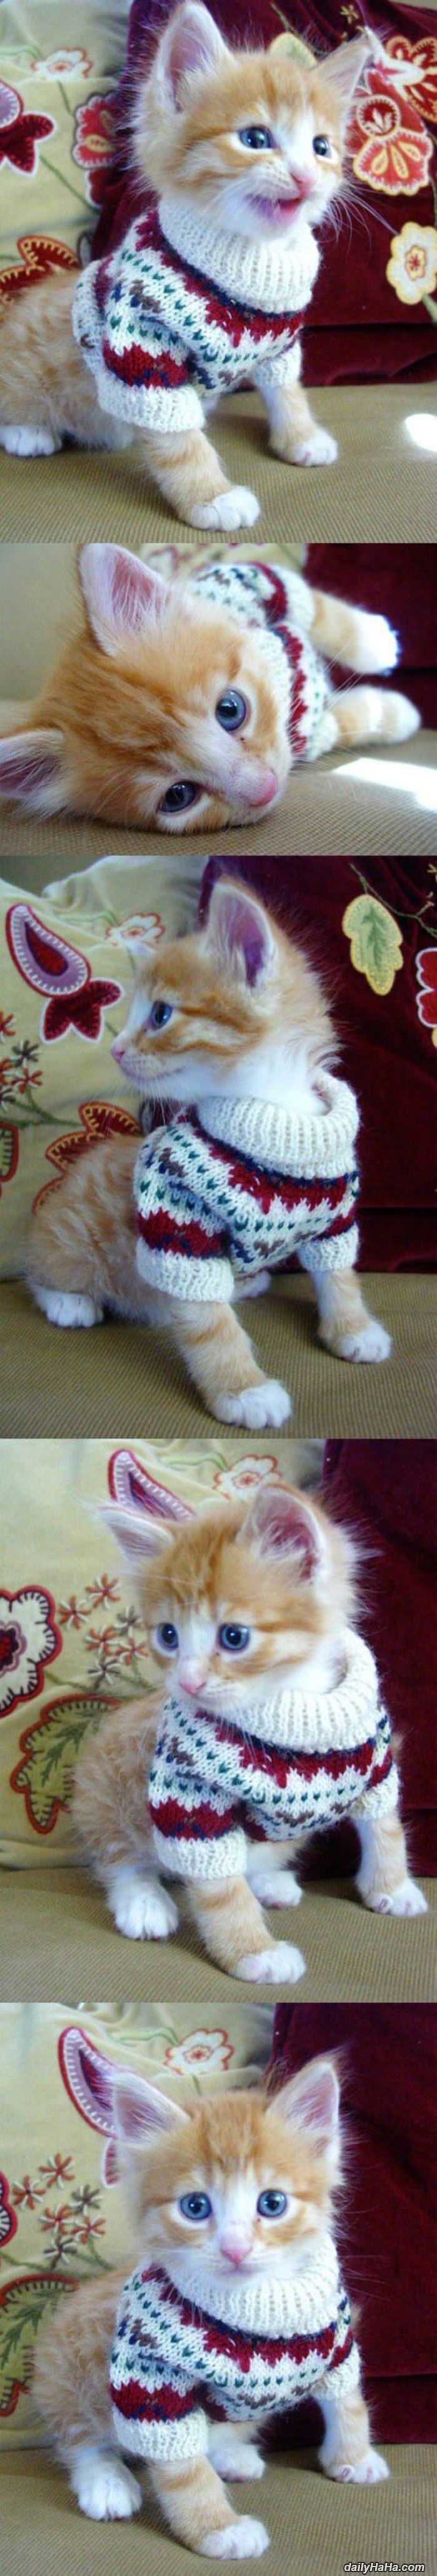 kitten sweater funny picture